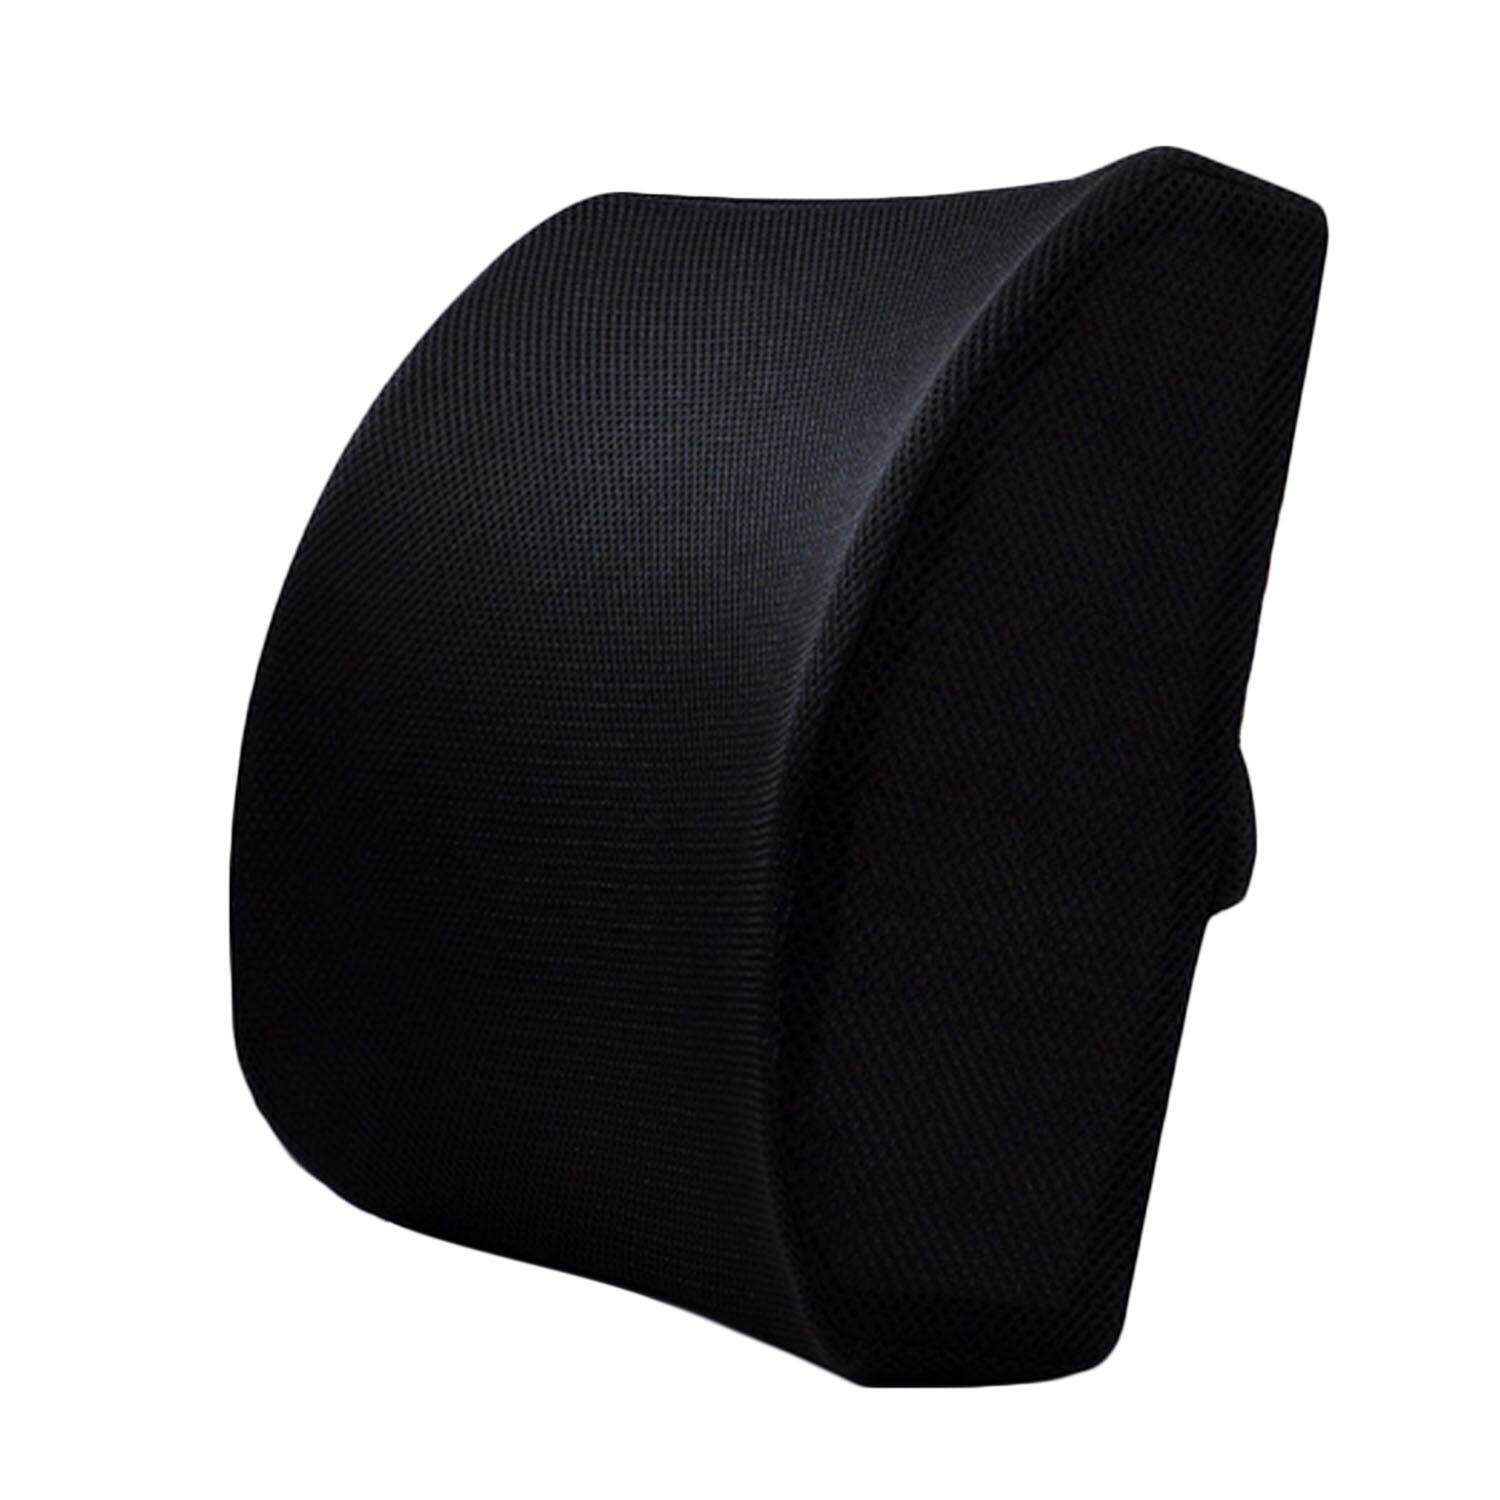 Comfort Memory Foam Office Chair Car Sofa Seat Back Cushion Lumbar Support Pillow With Dual Adjustable